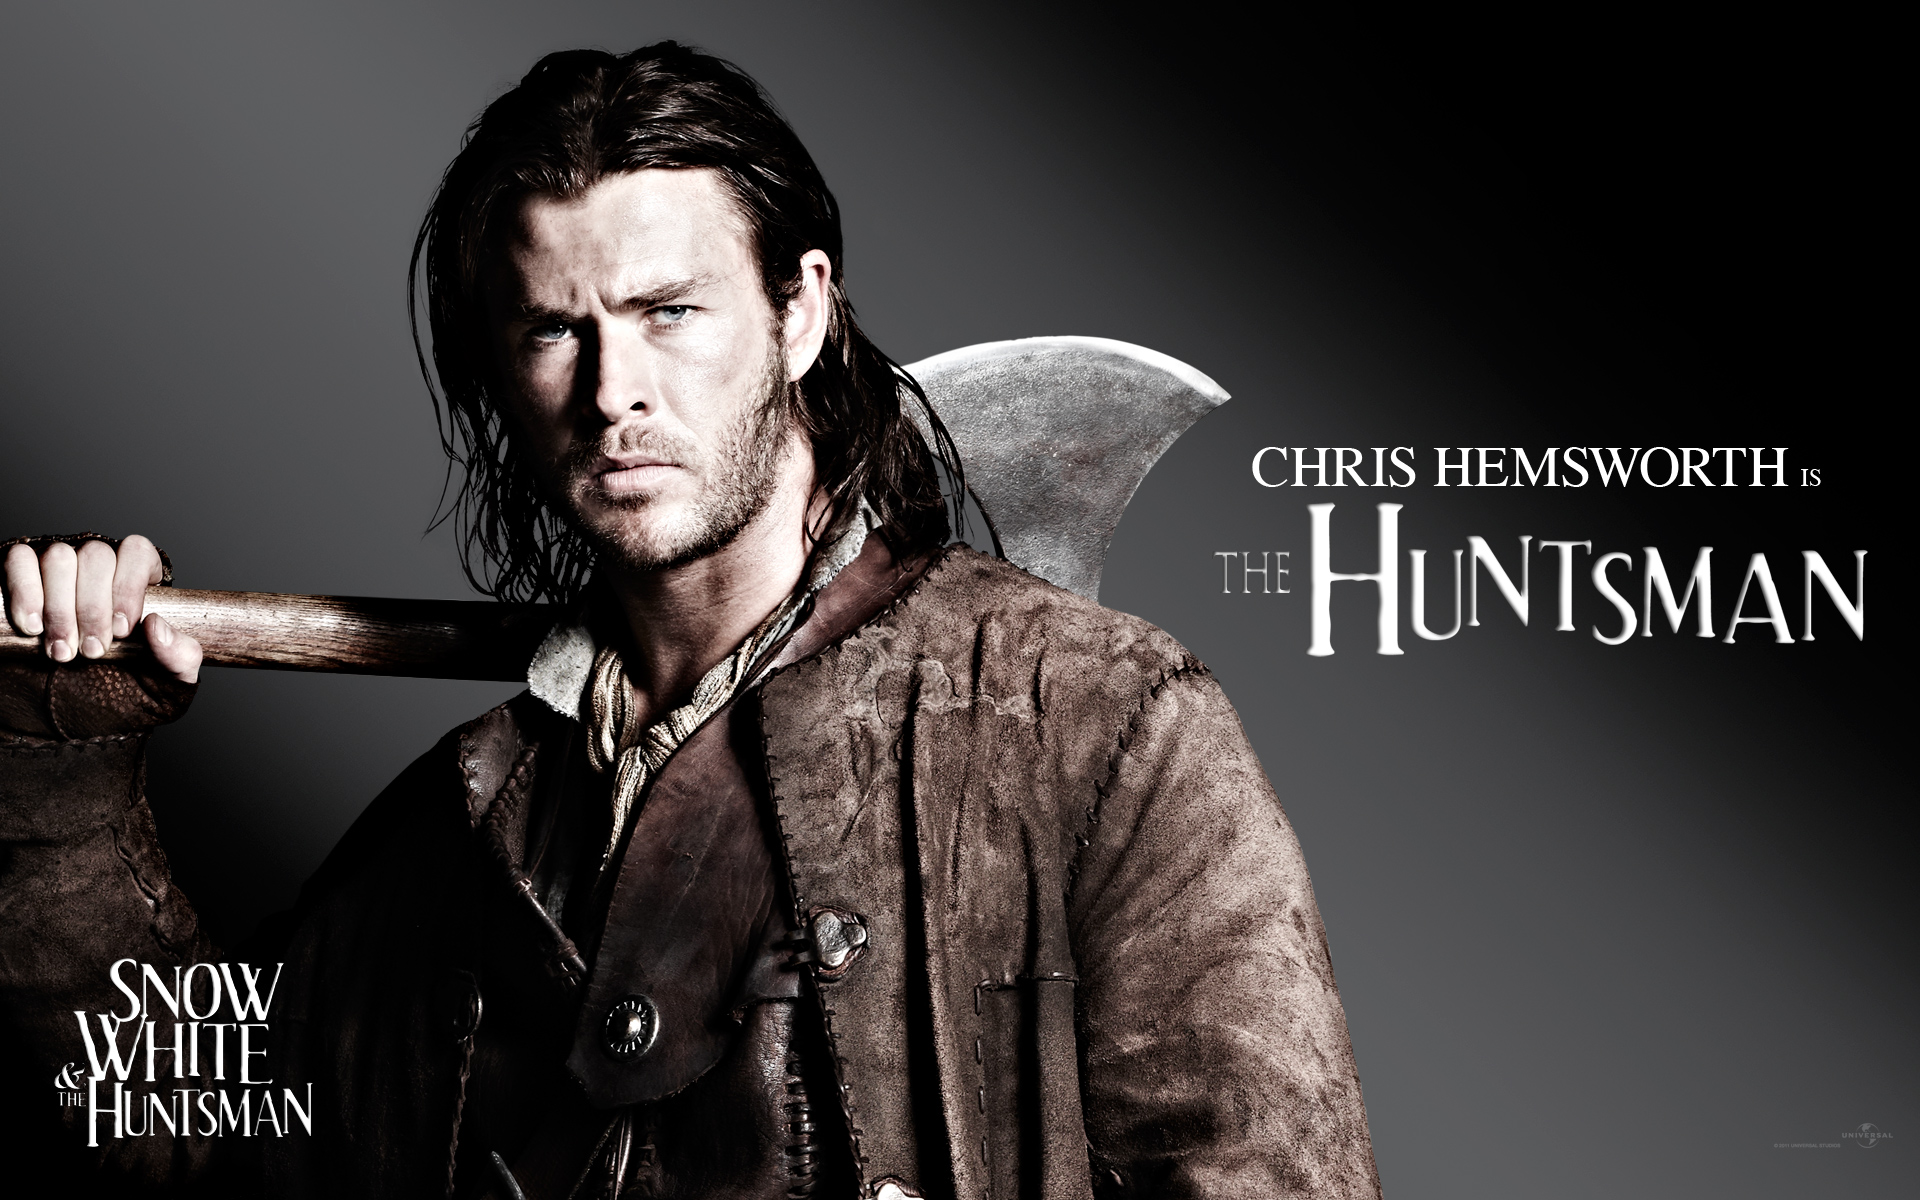 Snow White Huntsman Hemsworth